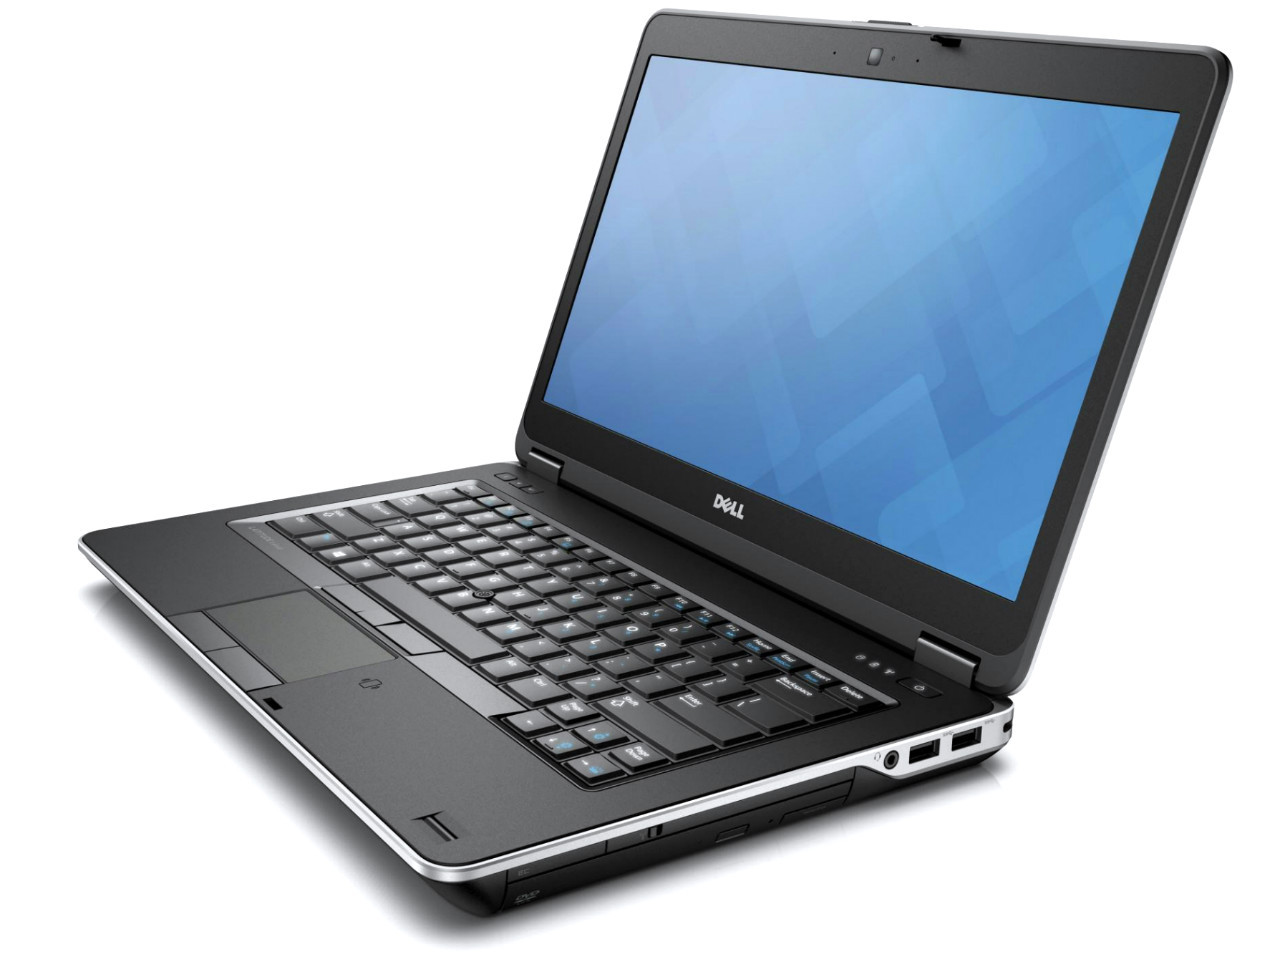 Dell Latitude E6440 Laptop Core i7 2.9GHz, 8GB Ram, 500GB, DVD-RW, Windows 10 Pro 64 Notebook